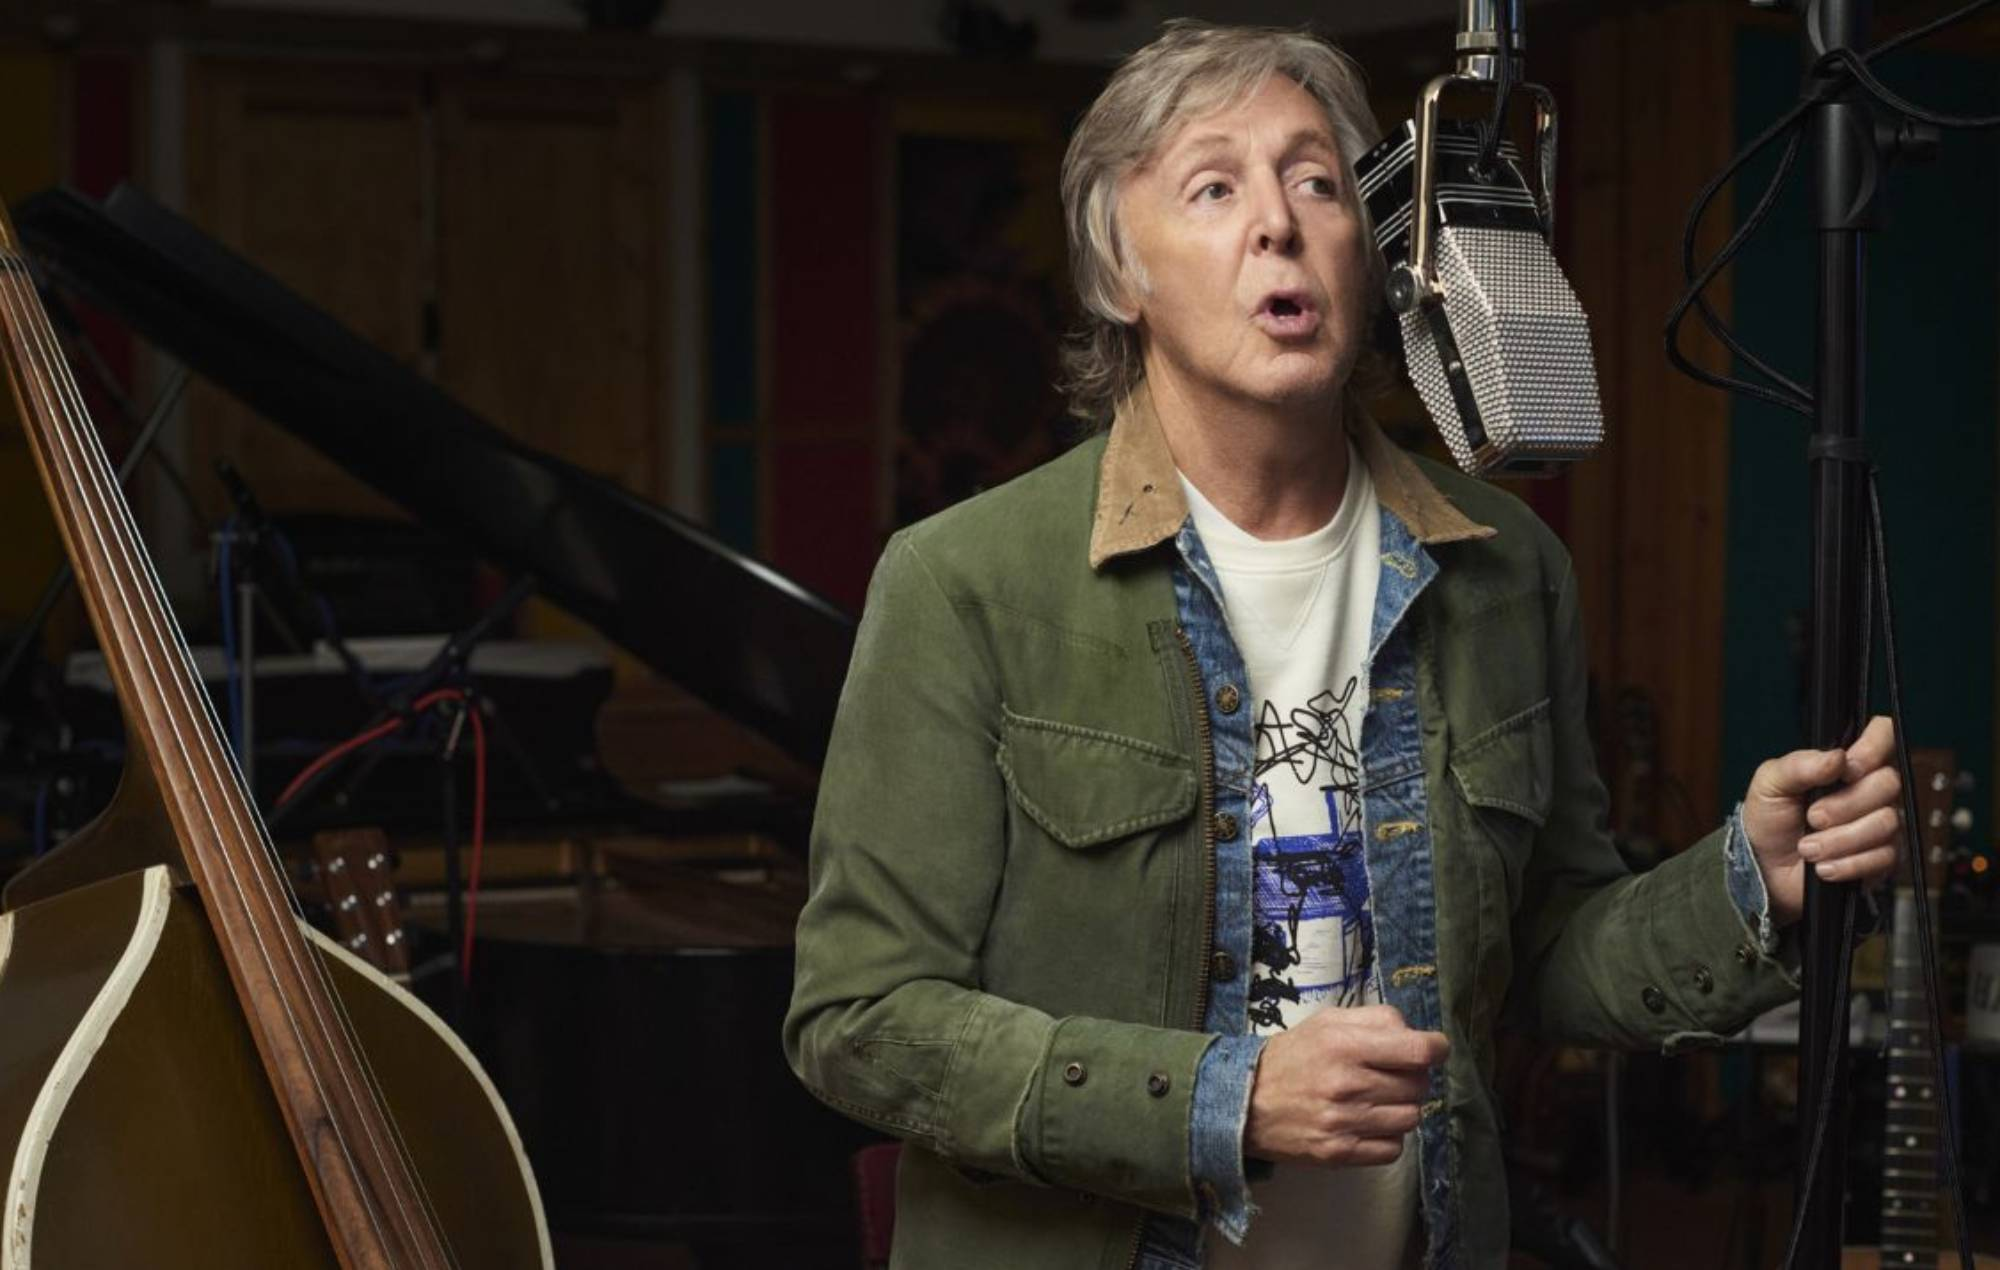 Paul McCartney to release 'McCartney III Imagined', with covers from St. Vincent, Beck, Josh Homme and more